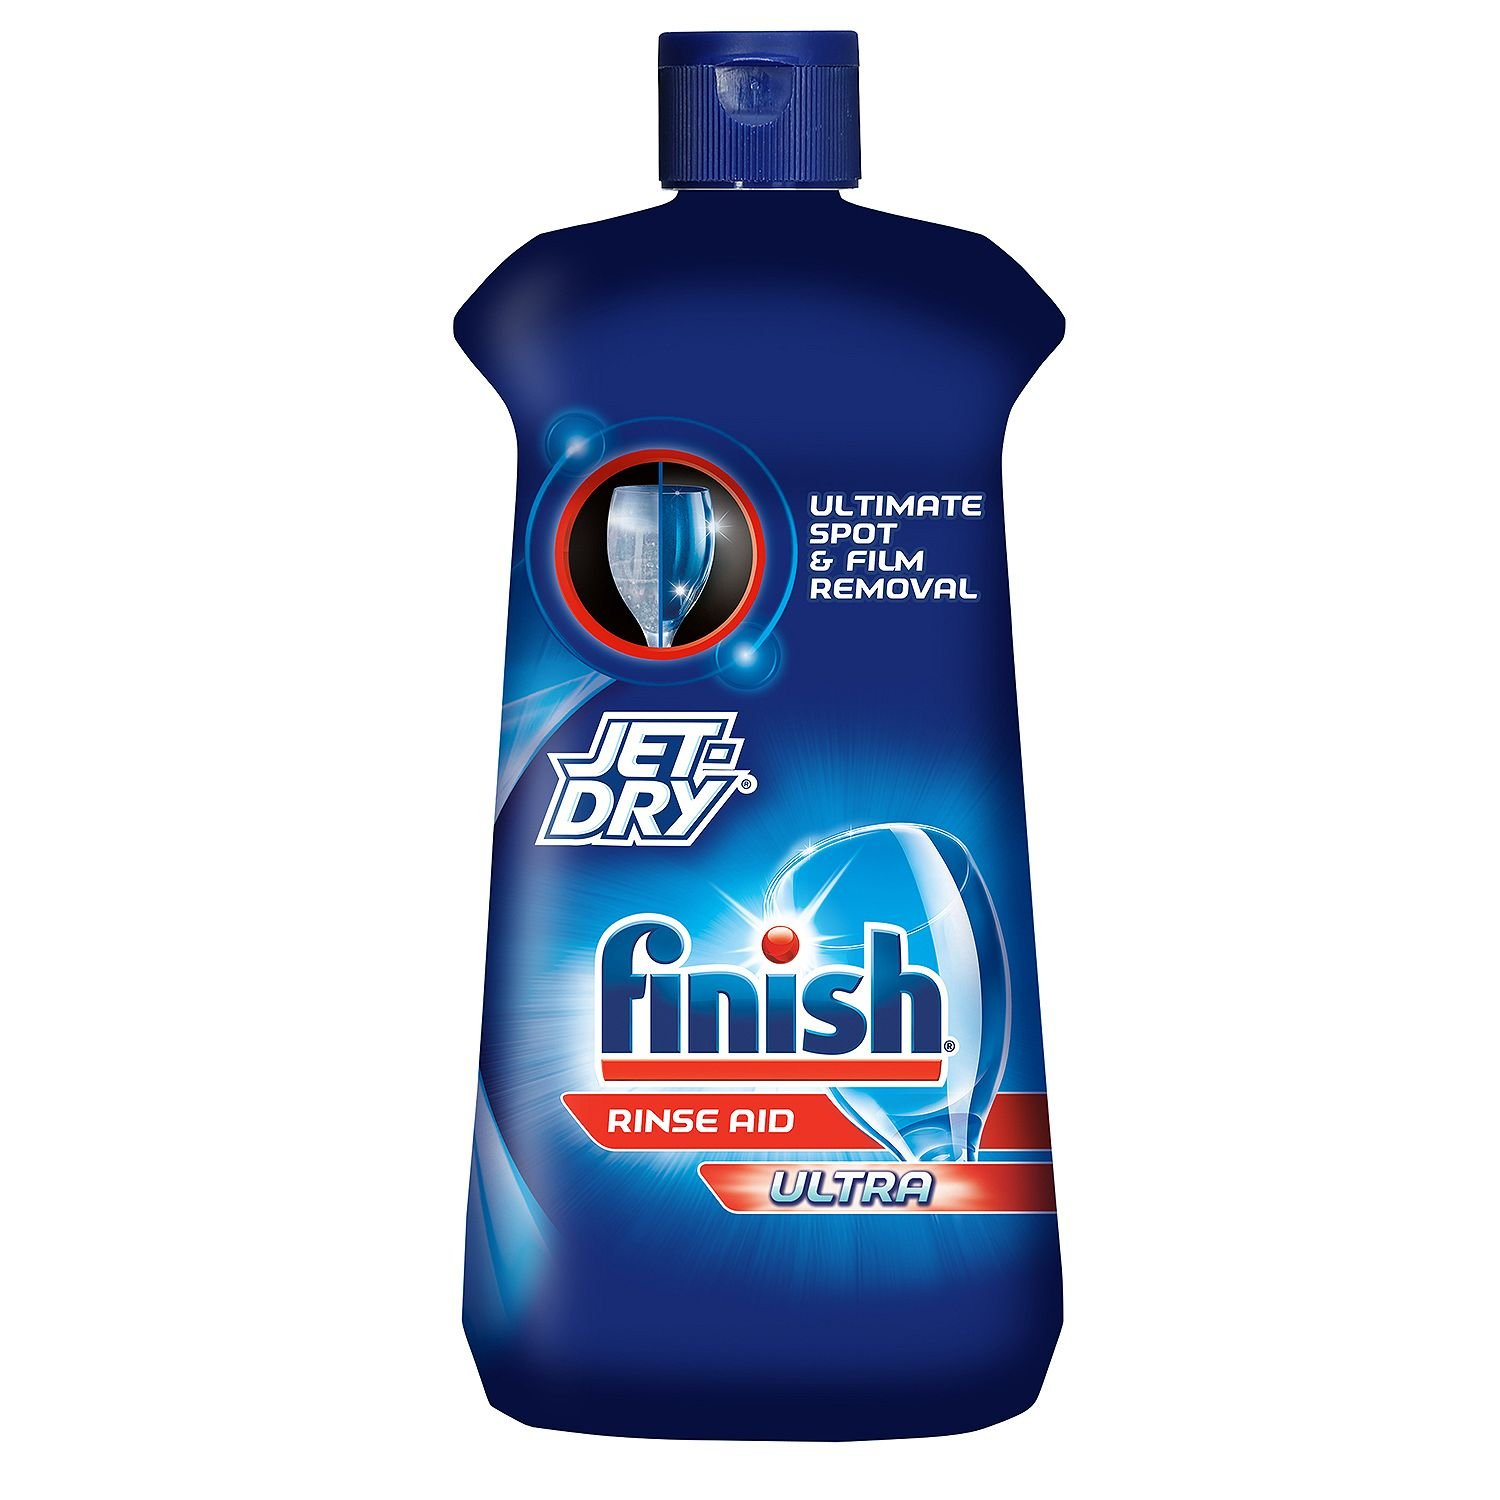 Finish Jet-Dry Ultra Rinse Aid (27.5 oz.) (pack of 6)